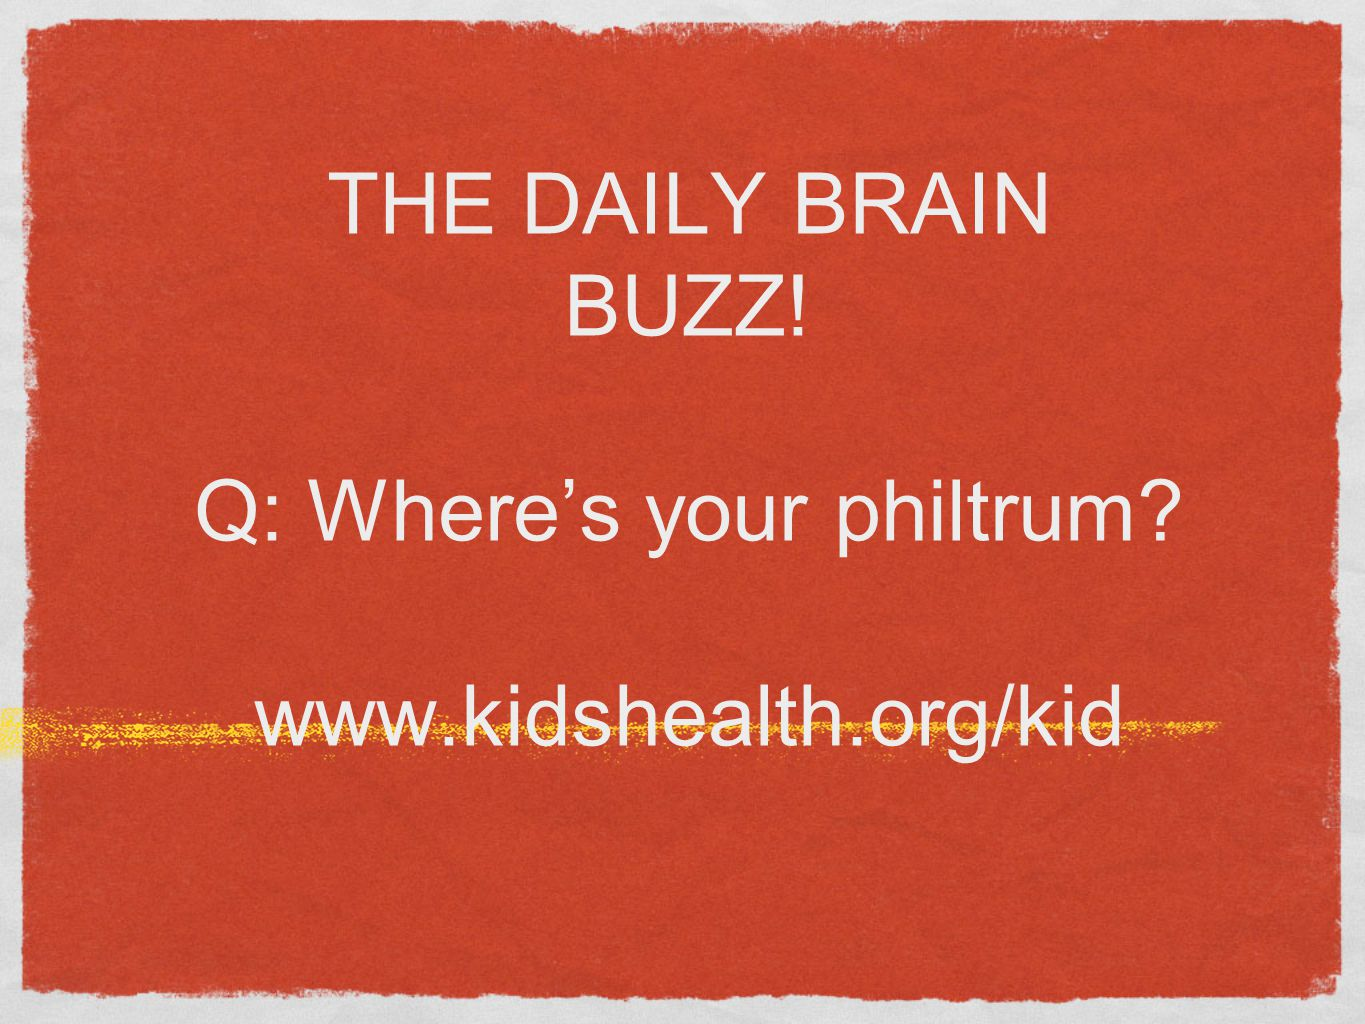 THE DAILY BRAIN BUZZ! Q: Where's your philtrum